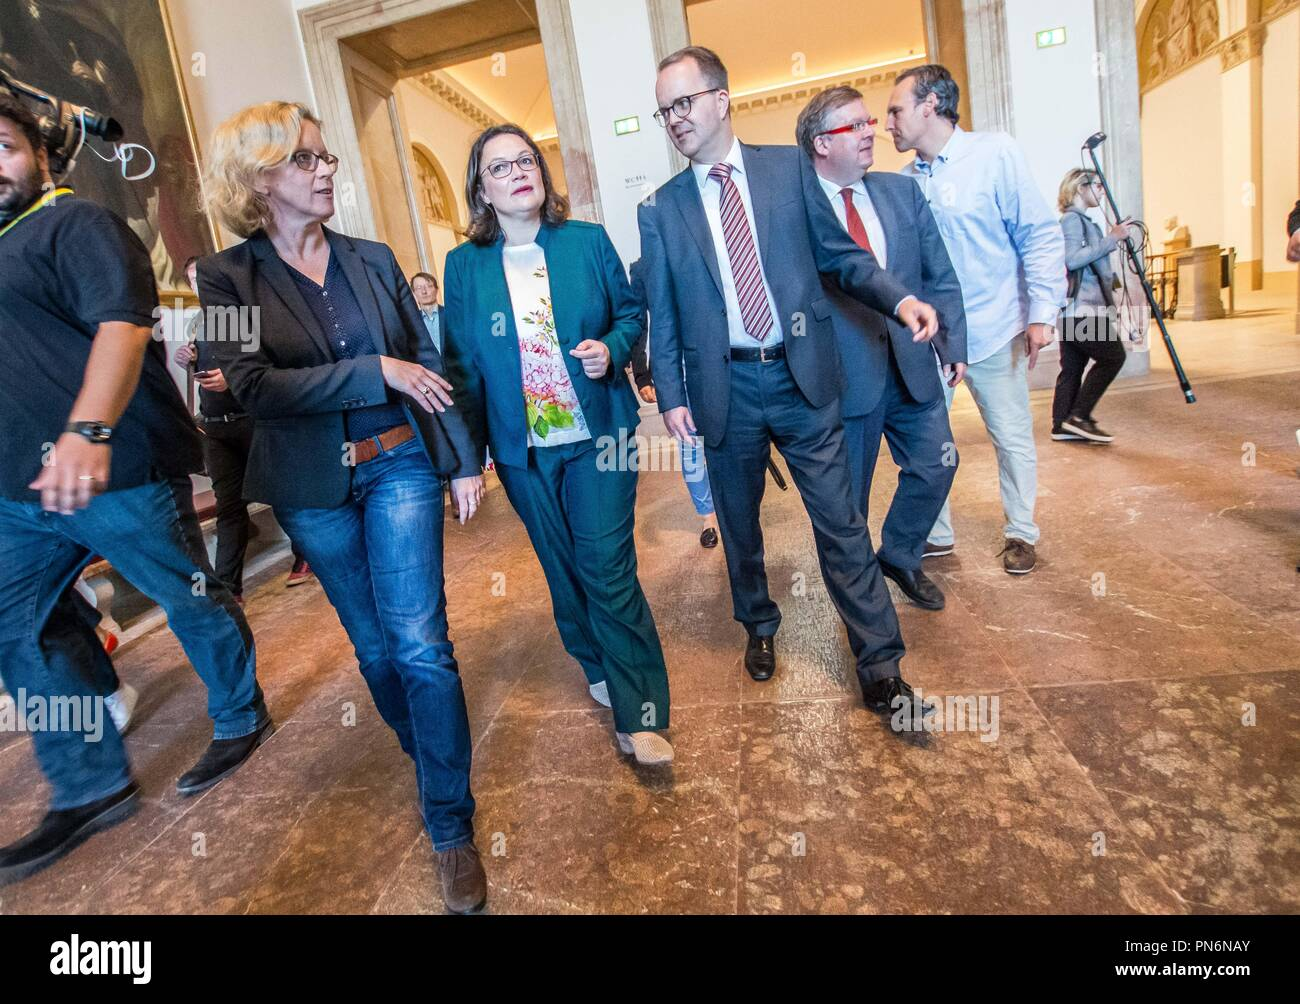 September 20, 2018 - Munich, Bavaria, Germany - NATASCHA KOHNEN, ANDREA NAHLES, MARKUS RINDERSPACHER arrive at the Bavarian Landtag.  ANDREA NAHLES and NATASCHA KOHNEN, the heads of the German and Bavarian fractions of the SPD party respectively, met at the Bavarian Landtag (Parliament) Thursday morning to discuss numerous issues, including the recent promotion of the embattled and allegedly compromised Hans George Maassen (Maaßen) of the Verfassungsschutz to Staatssekretaer.  Despite the alleged giving out of unpublished information to the right-extreme AfD party, consulting with them, and r - Stock Image